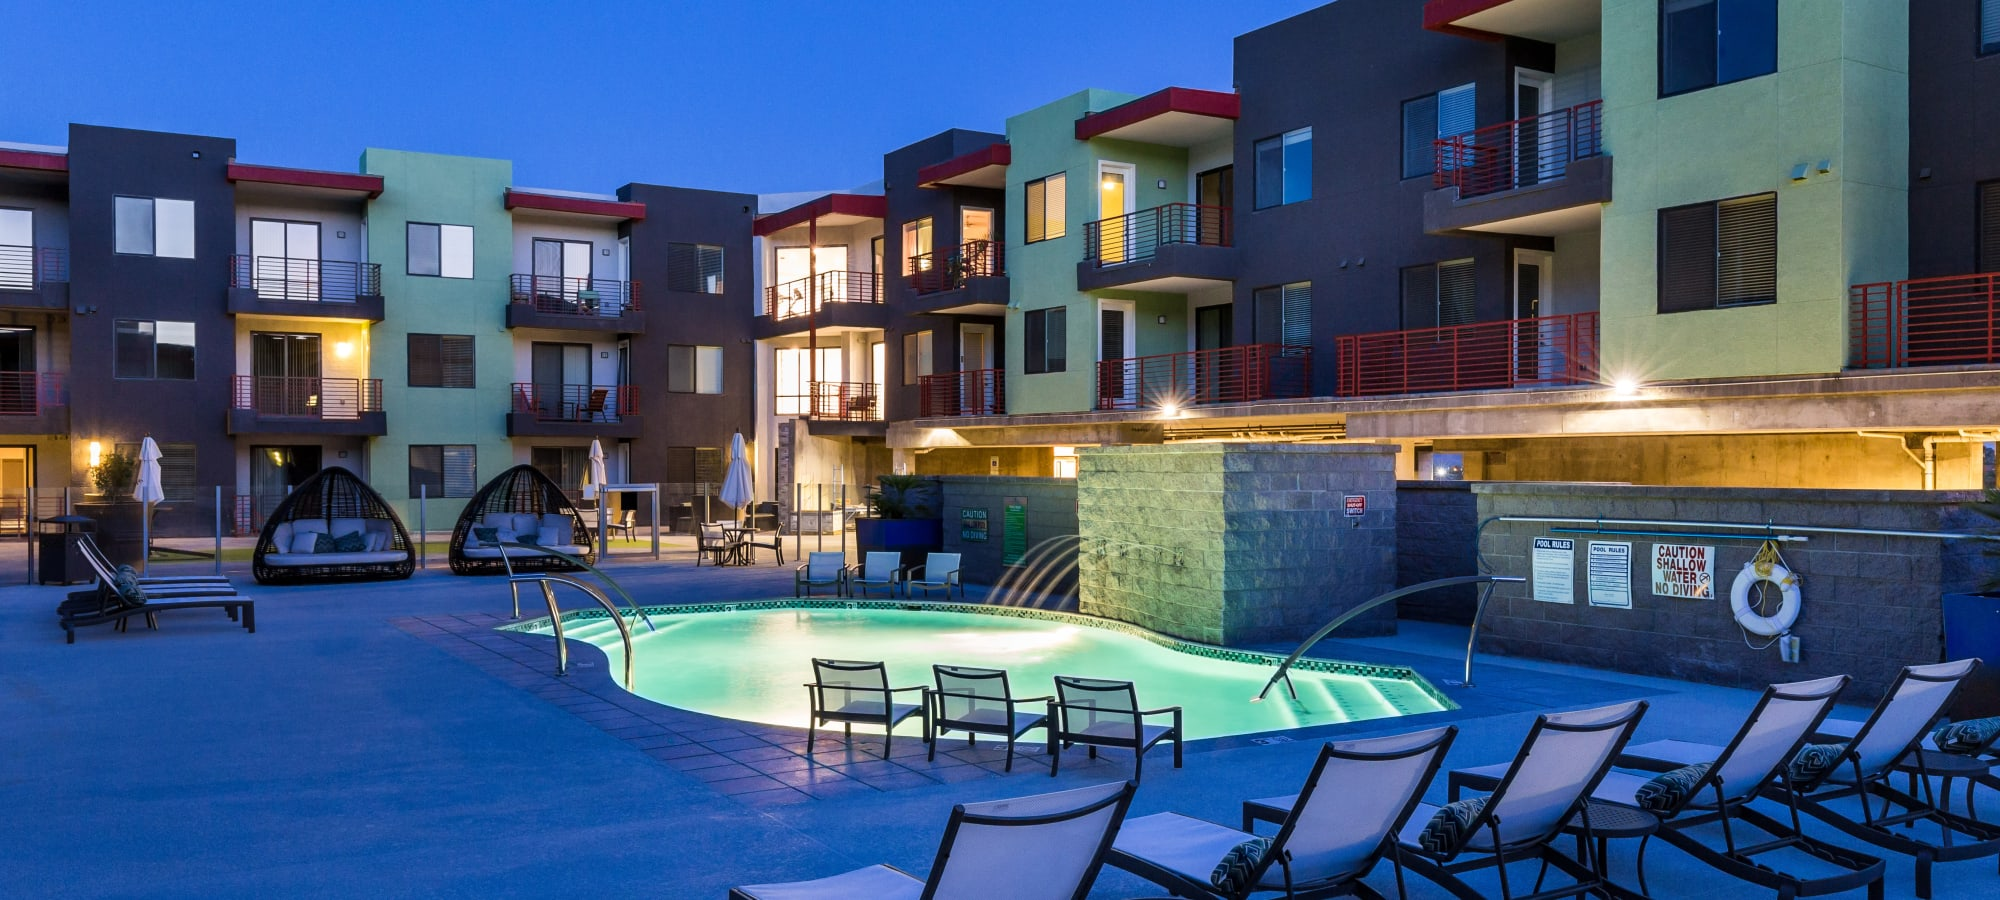 Dog spa at Park Place at Fountain Hills in Fountain Hills, Arizona